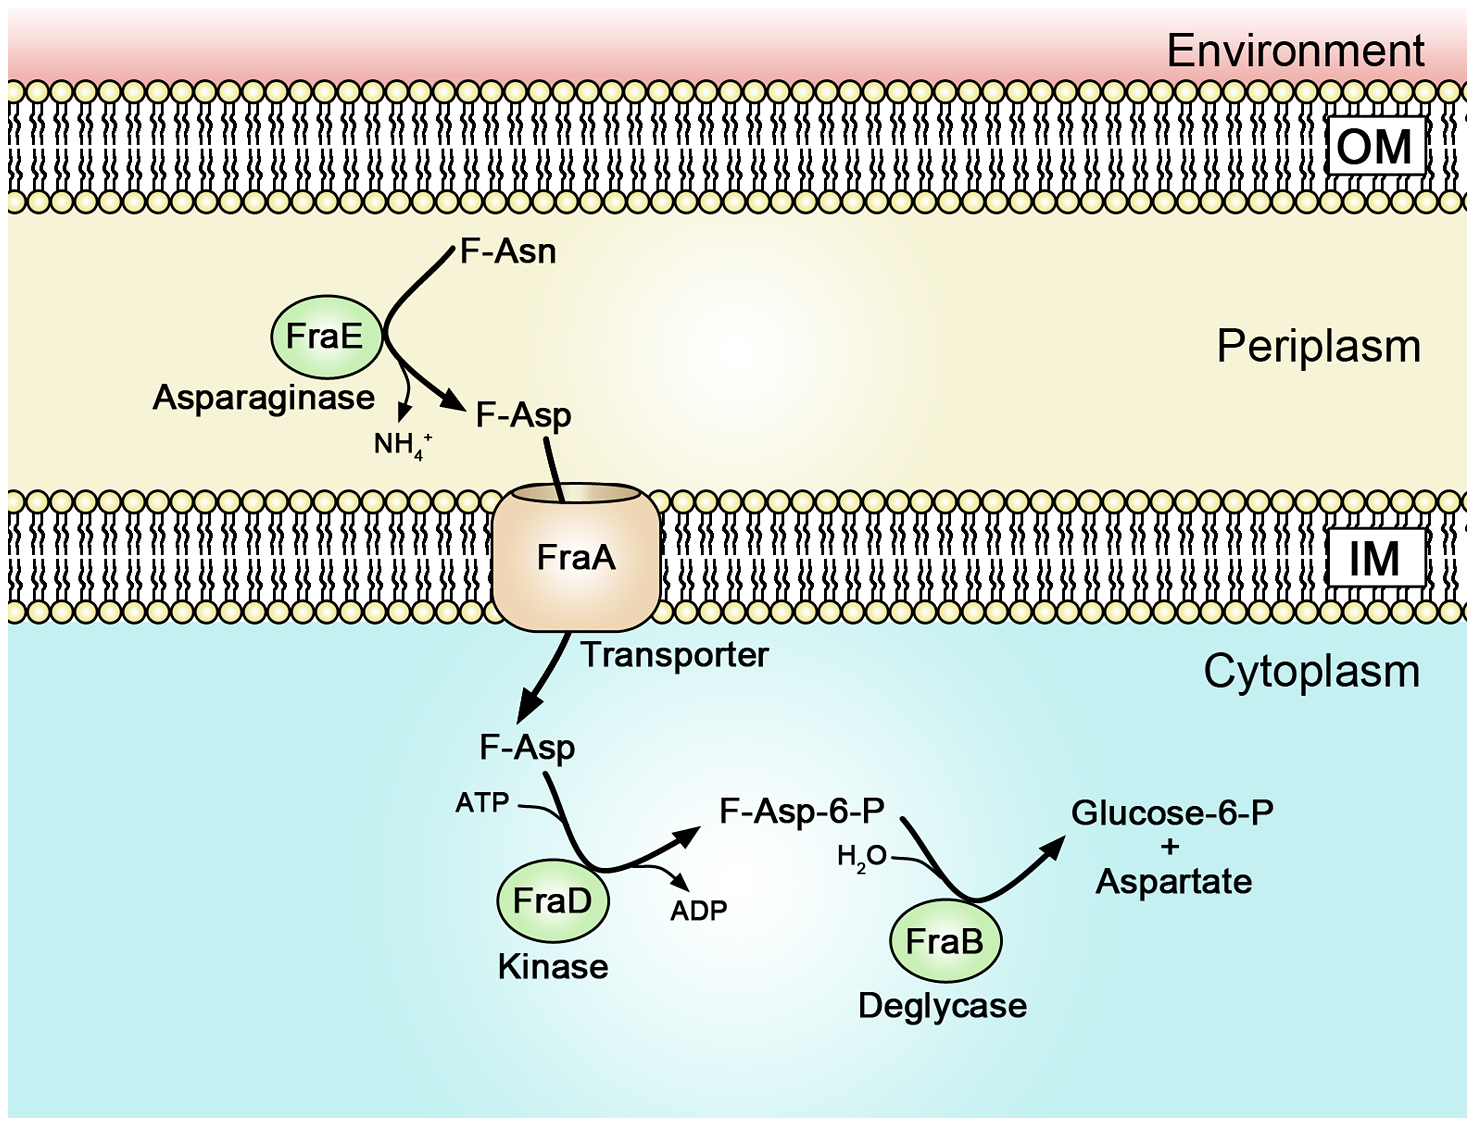 A proposed model of Fra protein localization and functions.